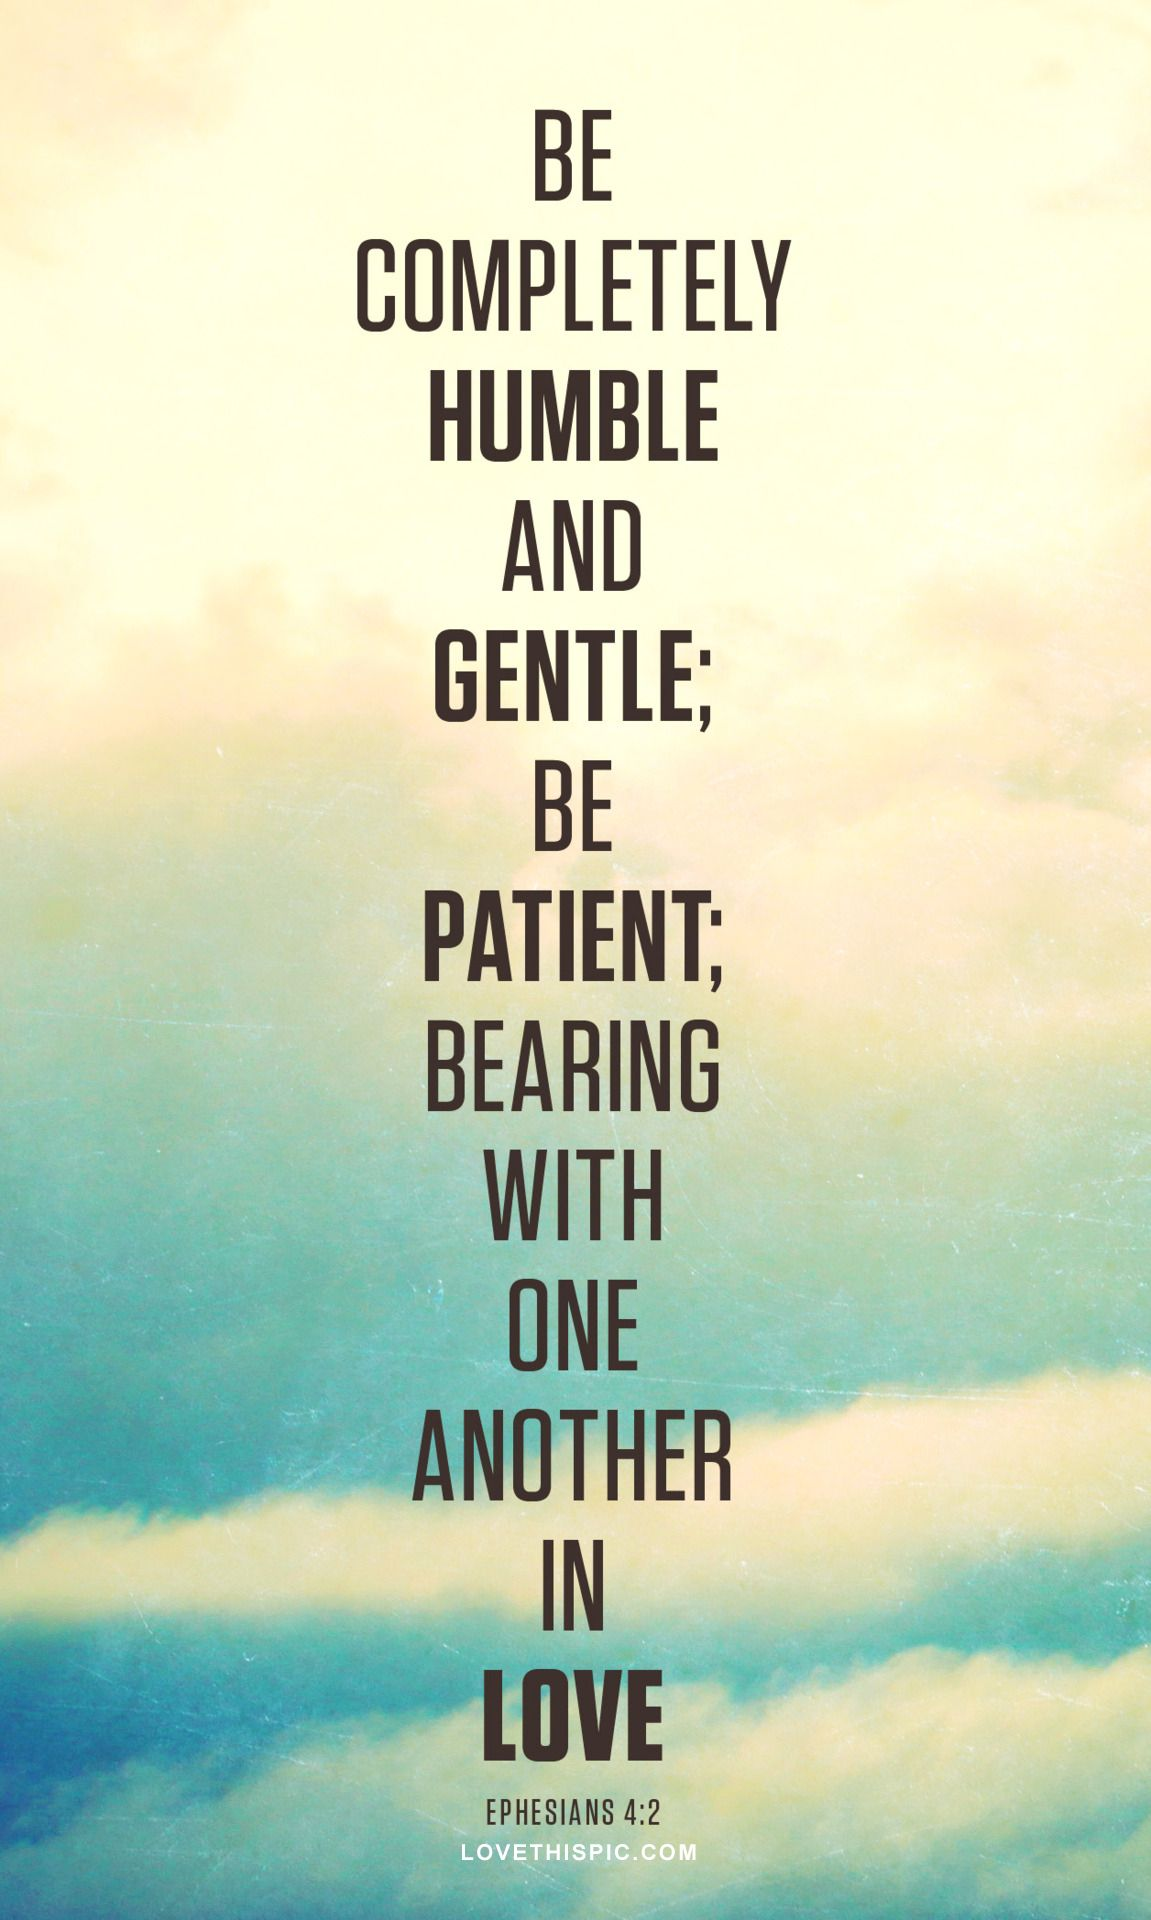 Bible Verses About Being Humble Be Completely Humble